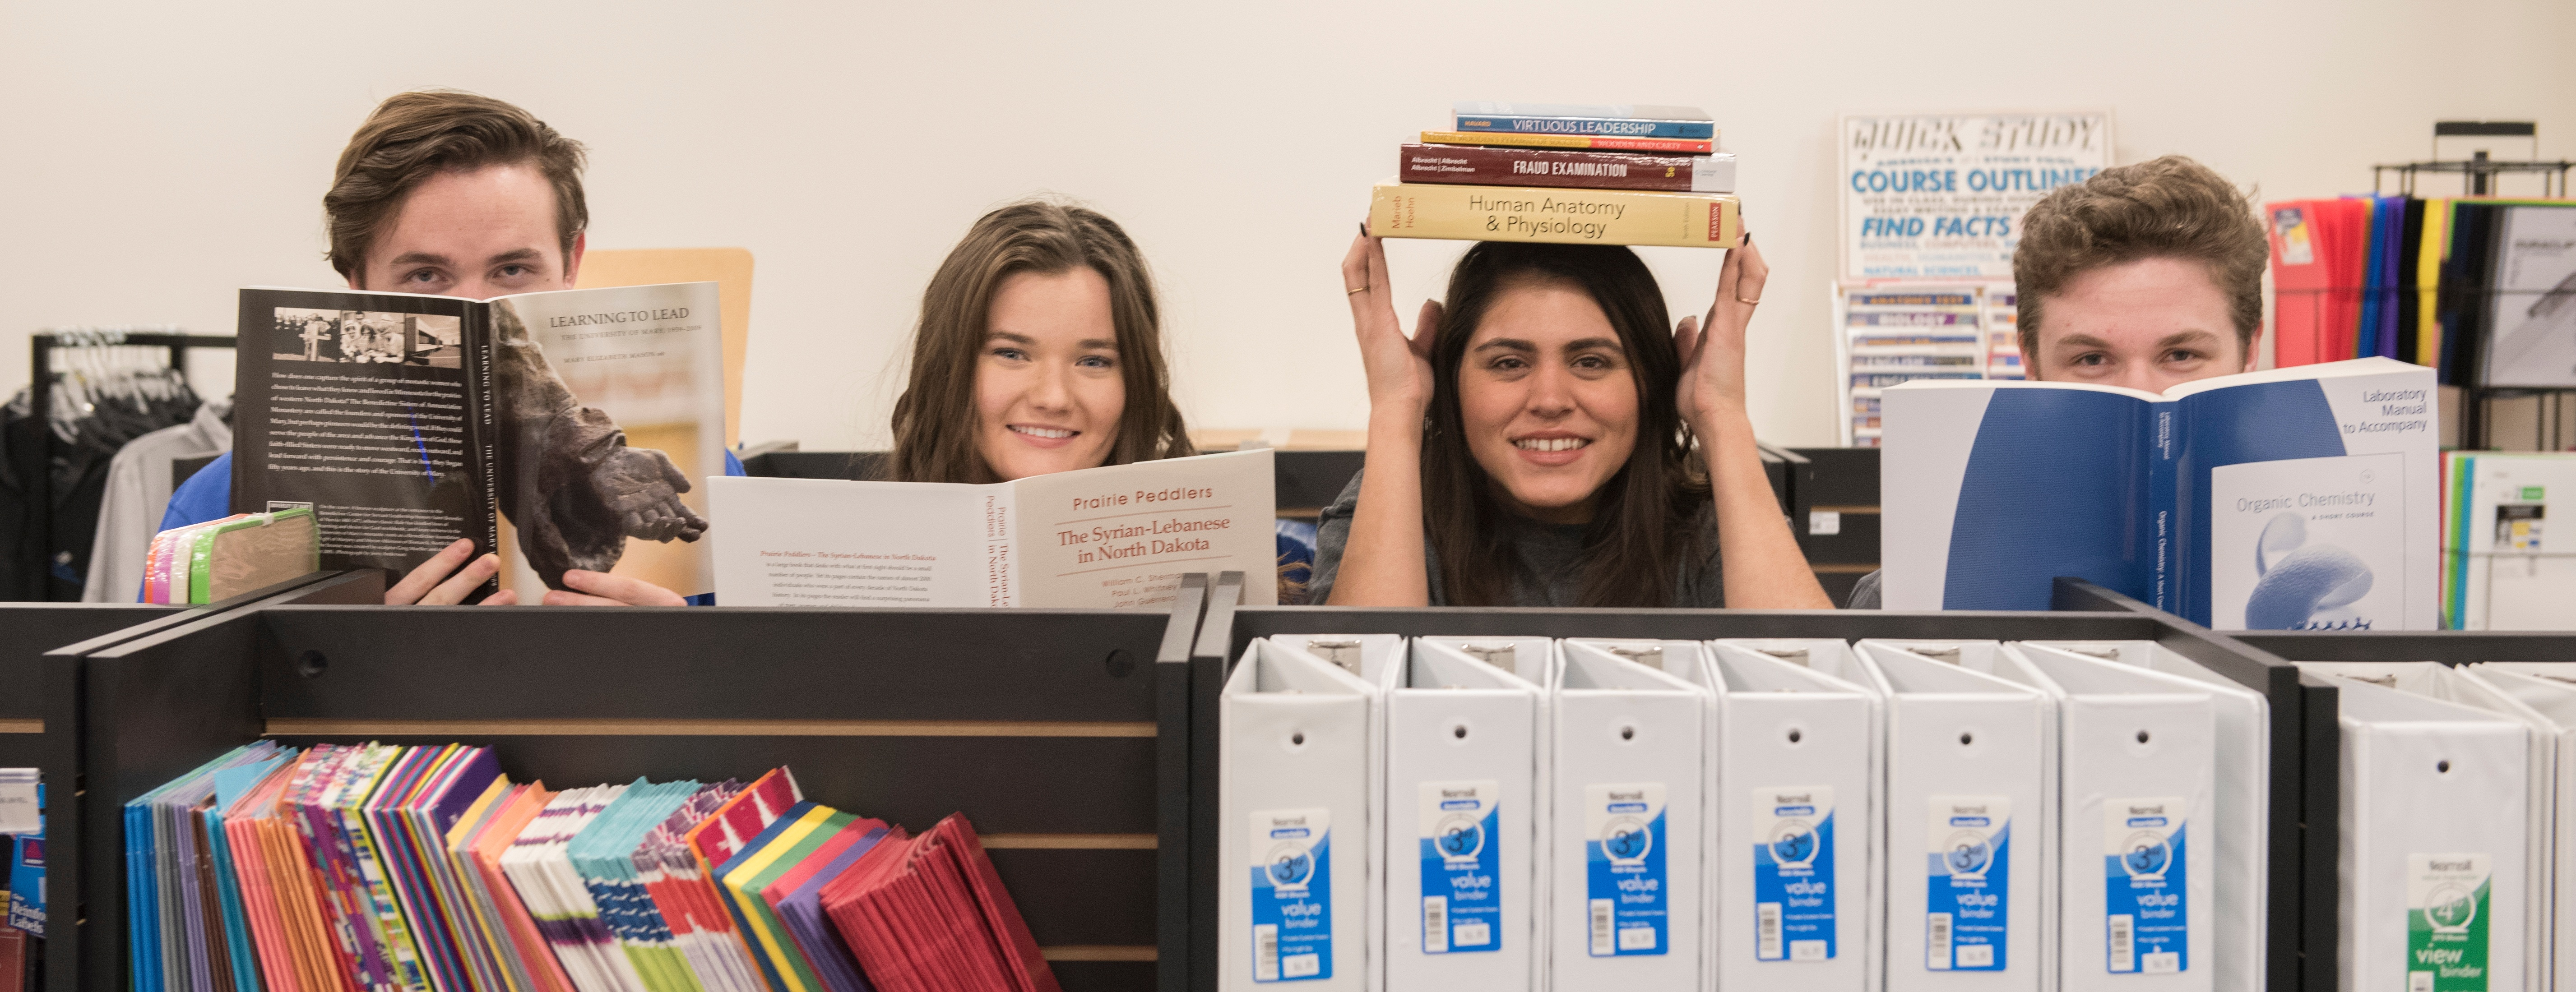 University of Mary Bookstore Makes the Most Out of Its New Locale